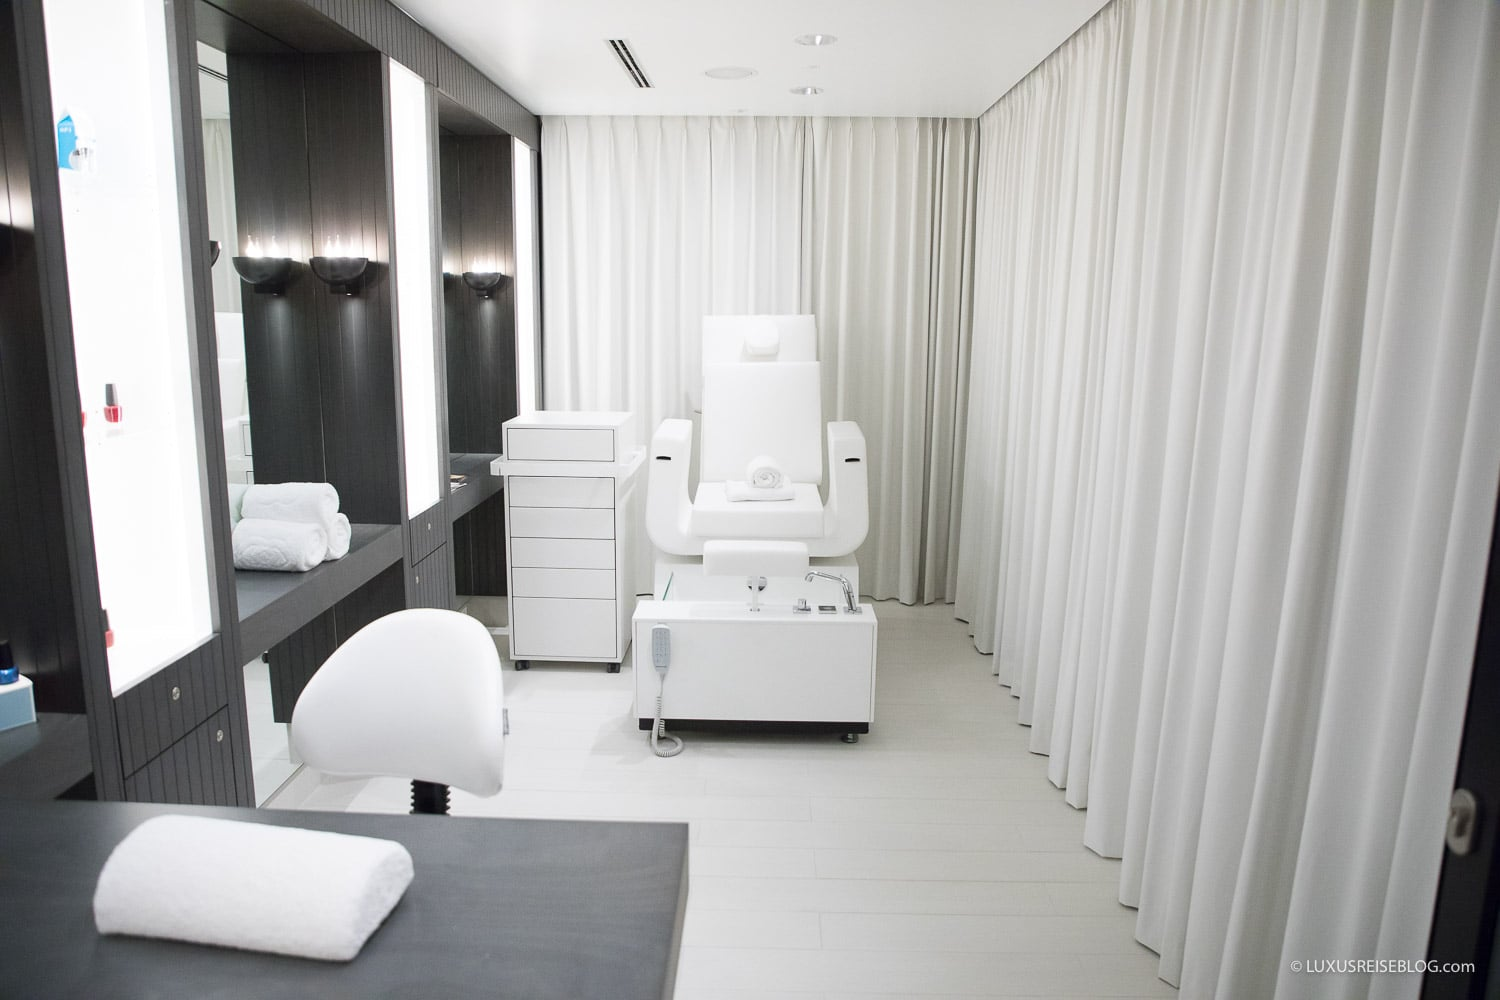 Spa und Wellness - So Spa - Sofitel Frankfurt Opera - Wellnessangebot - Opernplatz 14, Frankfurt - Wellnessblogger und Spa-Blogger - Massage, Facials, Treatments